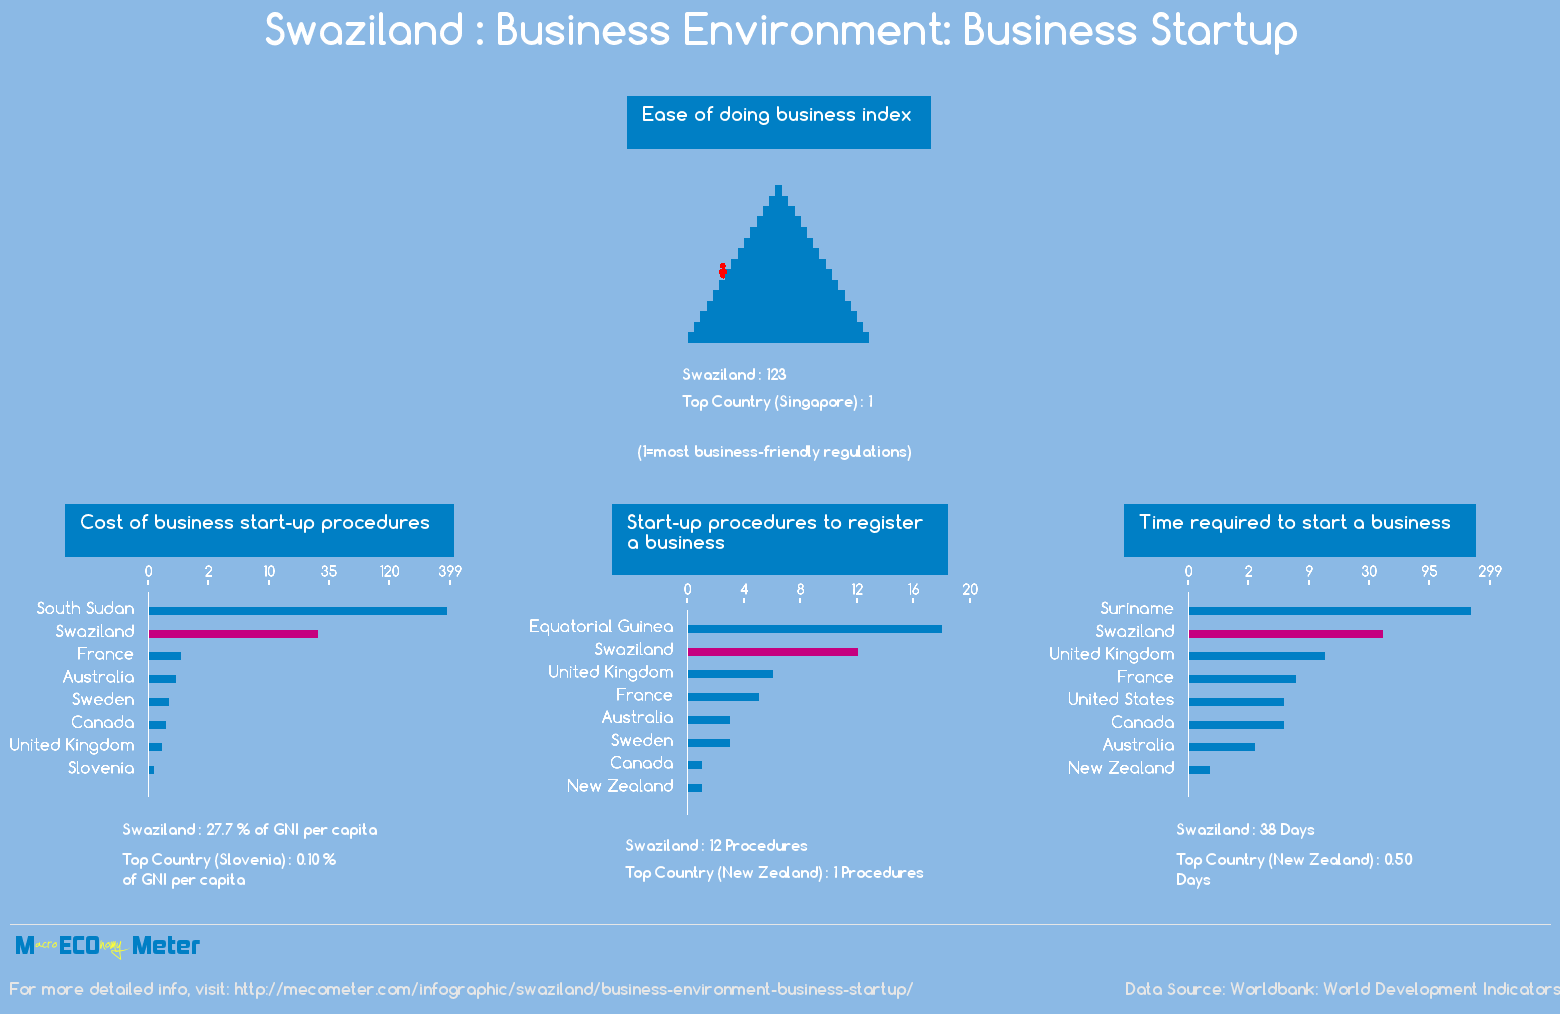 Swaziland : Business Environment: Business Startup